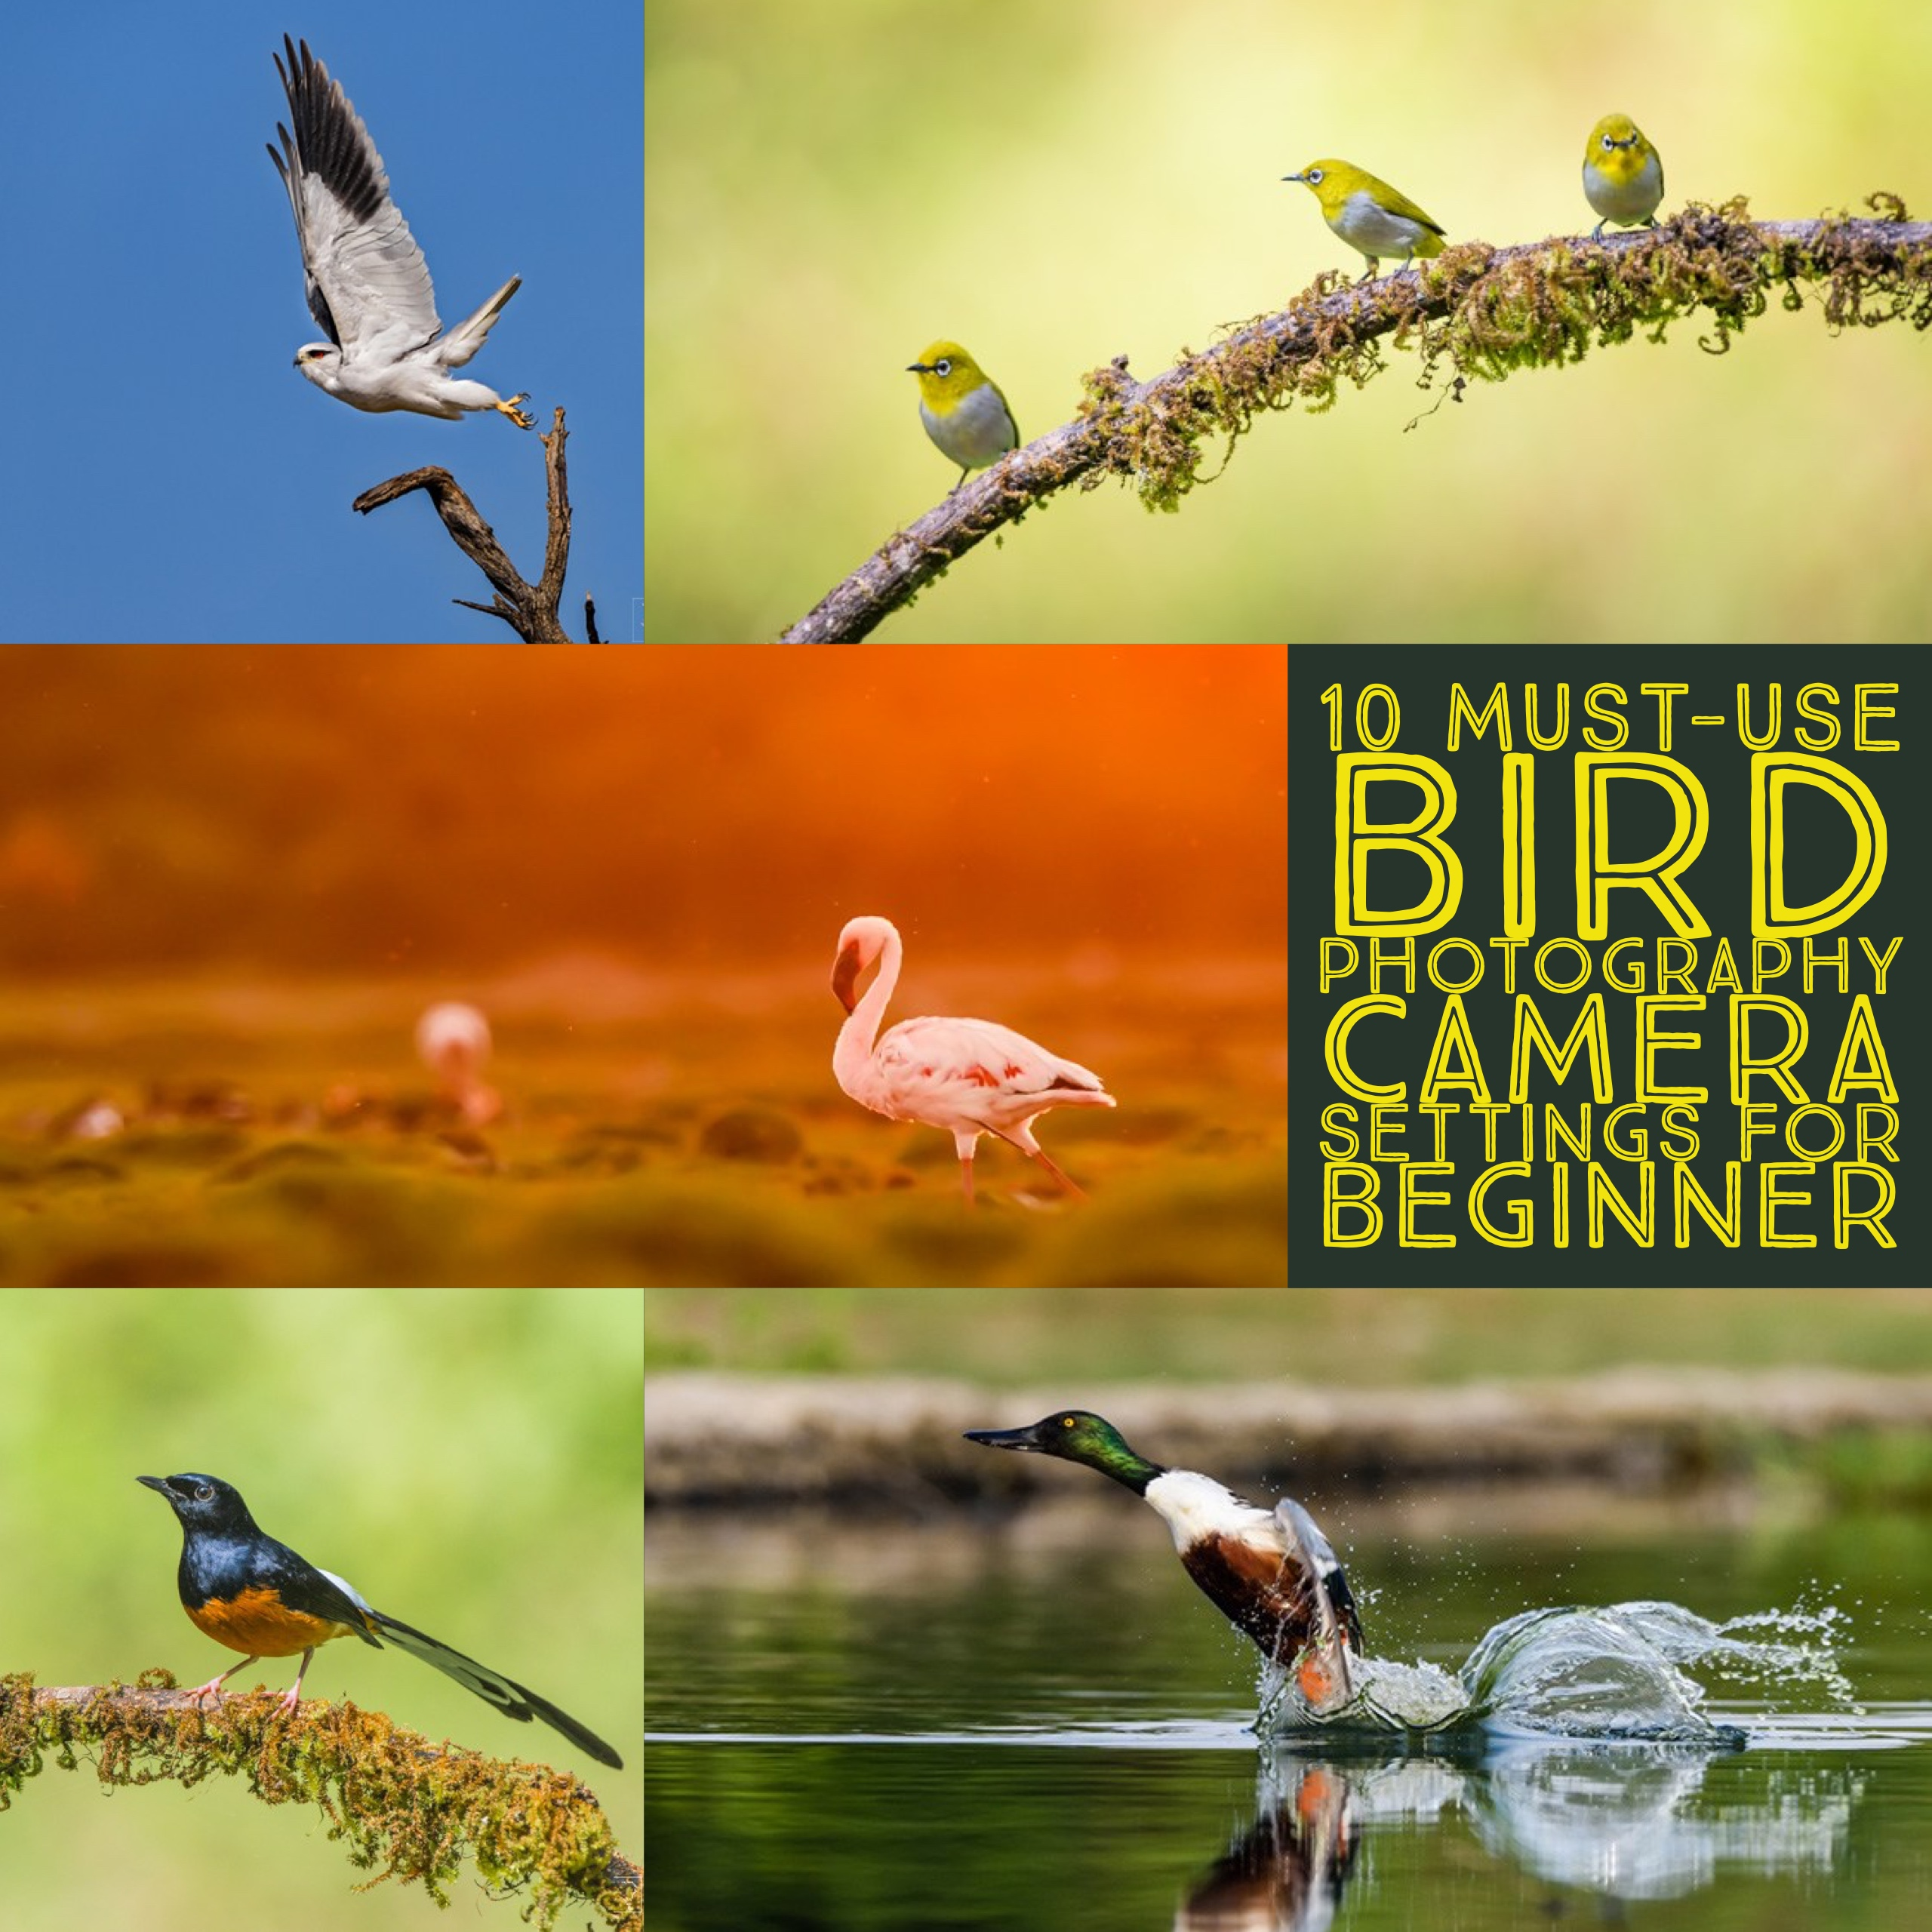 10 Must-Use Bird Photography Camera Settings for Beginners